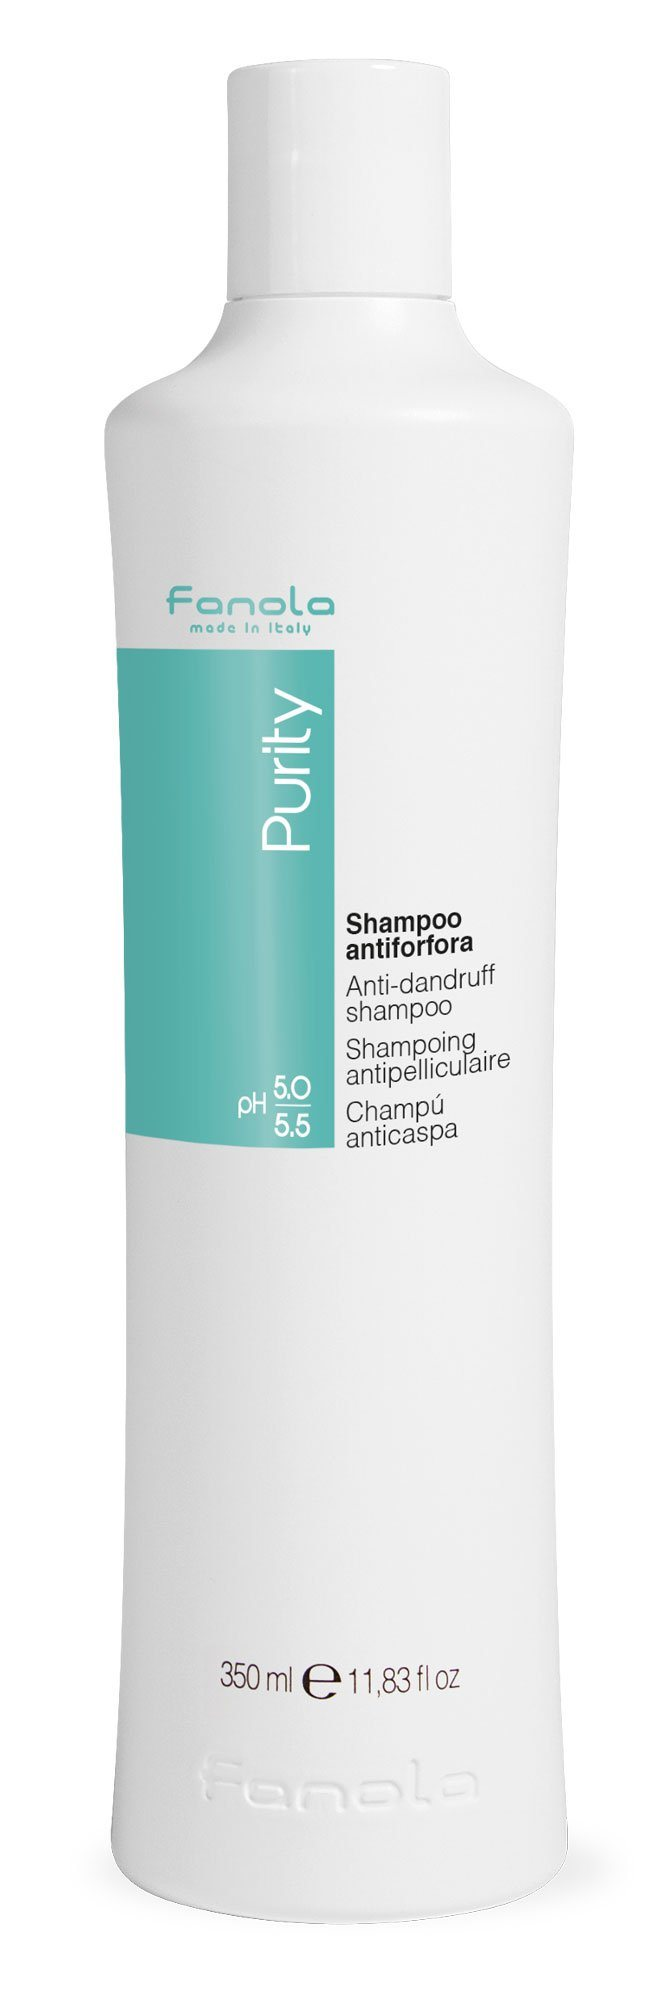 Fanola Purity Anti-Dandruff Shampoo Hair Shampoos Fanola 350 mL